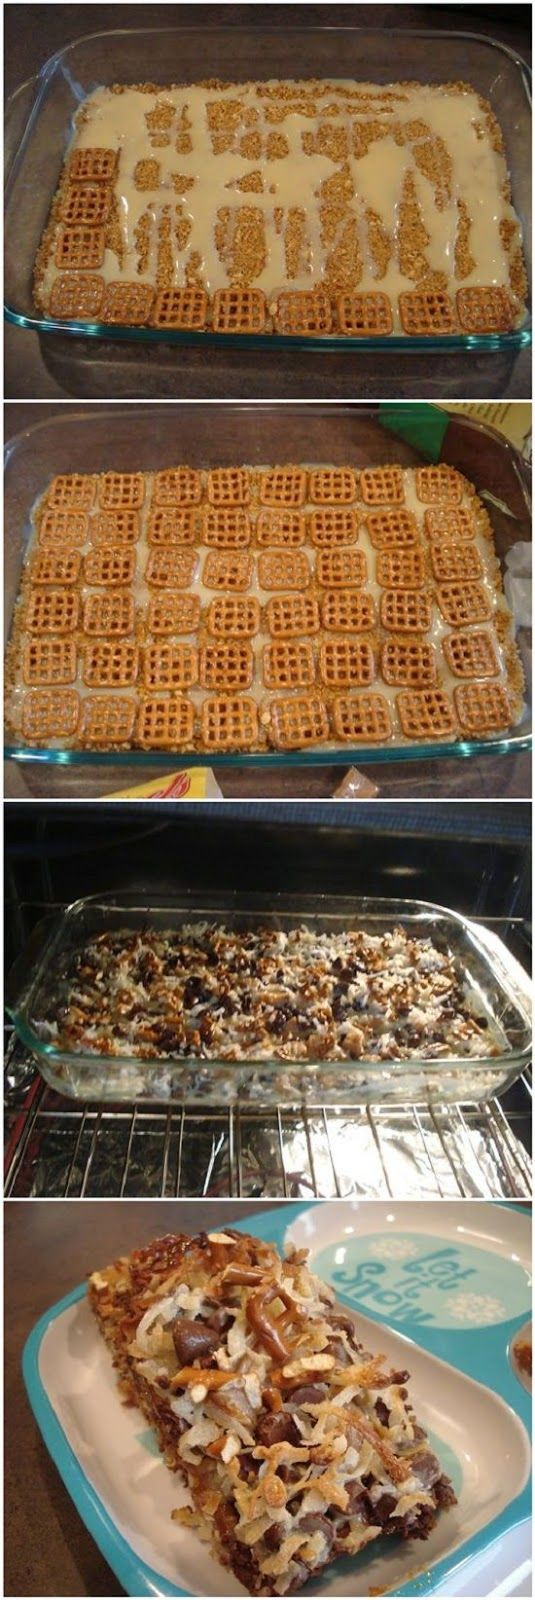 Ingredients   1 1/2 cup graham cracker crumbs  6 Tbsp butter, melted  1-14oz can sweetened condensed milk  50+ pretzels (I used Snyder's S...